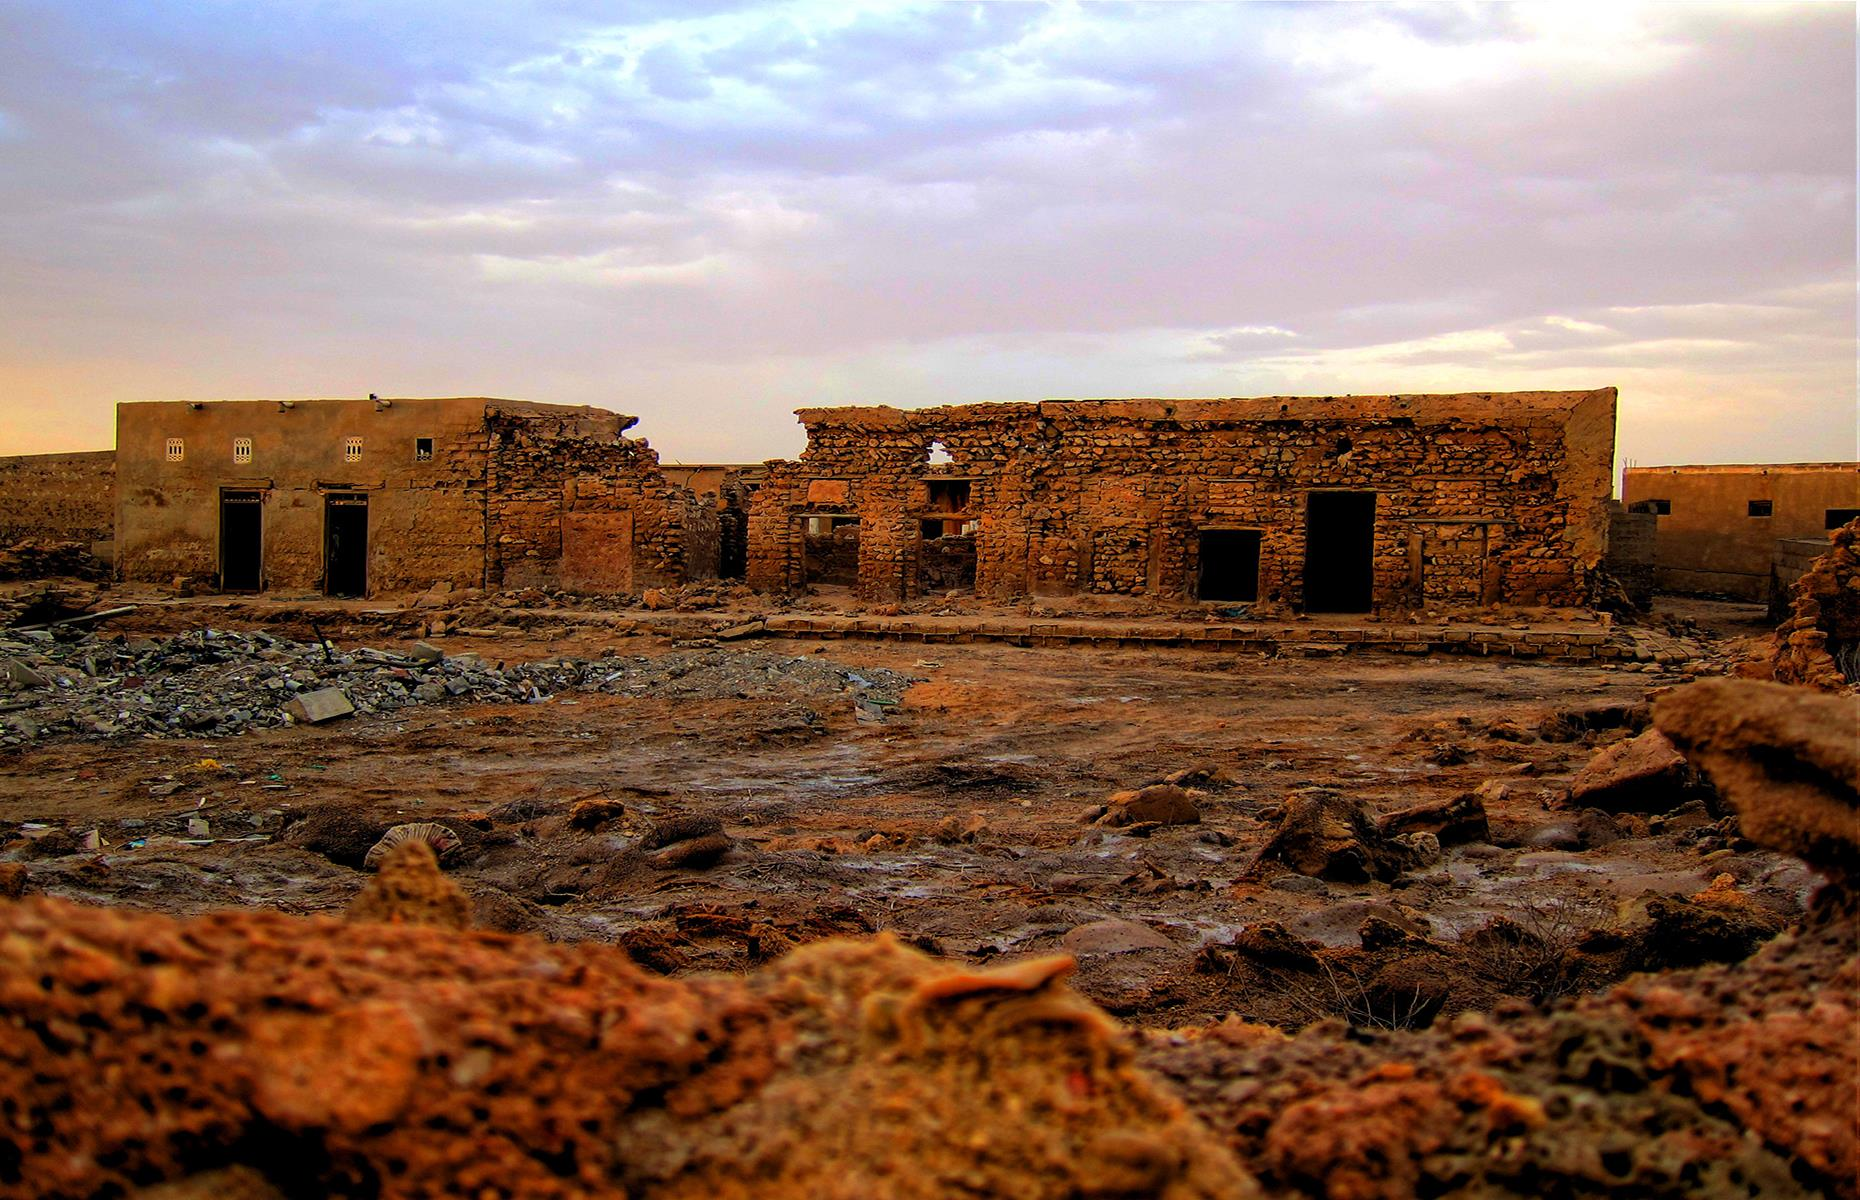 Slide 34 of 68: Now the coral stone buildings lie empty, coated in grains of rusty red desert sand. Some doors are locked, but visitors can peer into the belly of the buildings to see abandoned classrooms and bedrooms. The mosque still stands too. Take a look at more secret wonders hidden in the world's largest deserts.